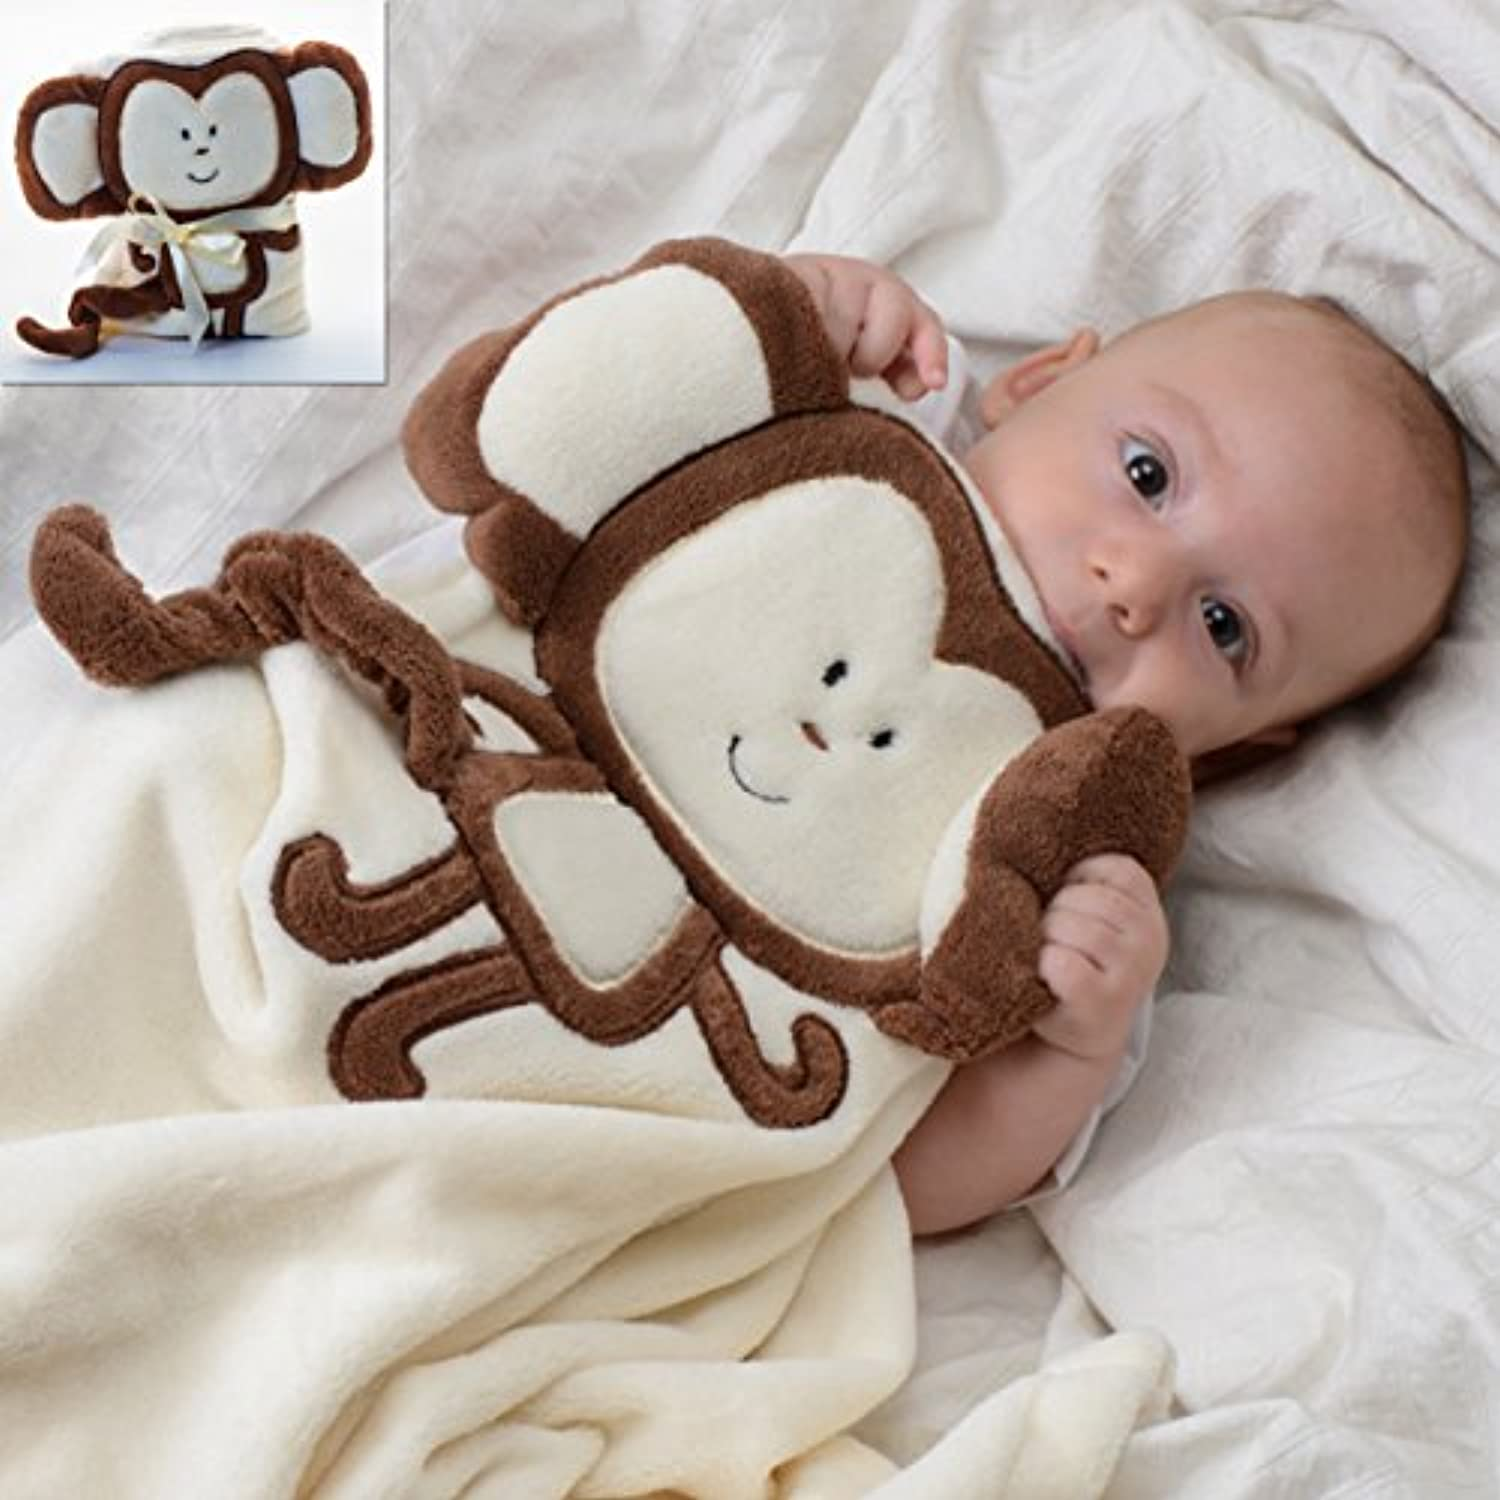 Baby-Touch Baby Plush Unisex Easy-Sleep Blanket, Monkey. Super-Soft Lightweight. Free Ebook Gift. by Baby Touch